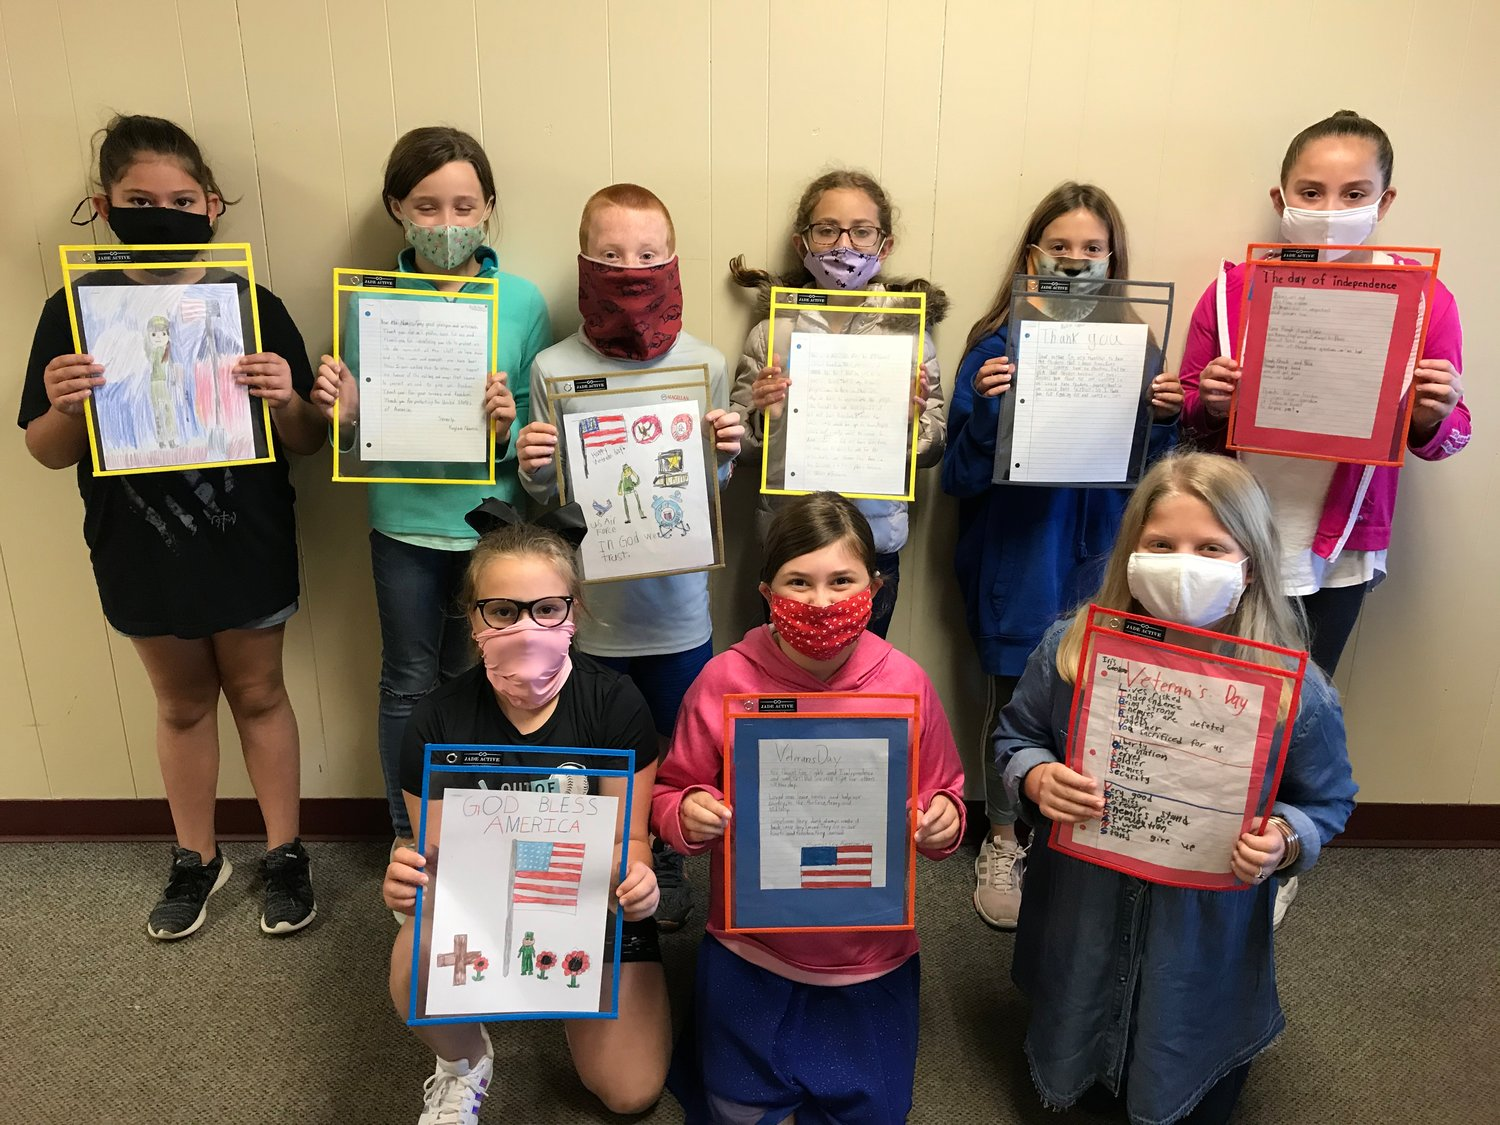 Winners of the Mineola Pilot Club patriotic challenge were, back from left, Lilah Dougherty, Kaylee Nance, J.D. McGough, Julieane Hoff, Bella Exner and Paislee Hall; and, front, Kinsler Bowker, Callee White and Iris Goodson. (Courtesy photo)